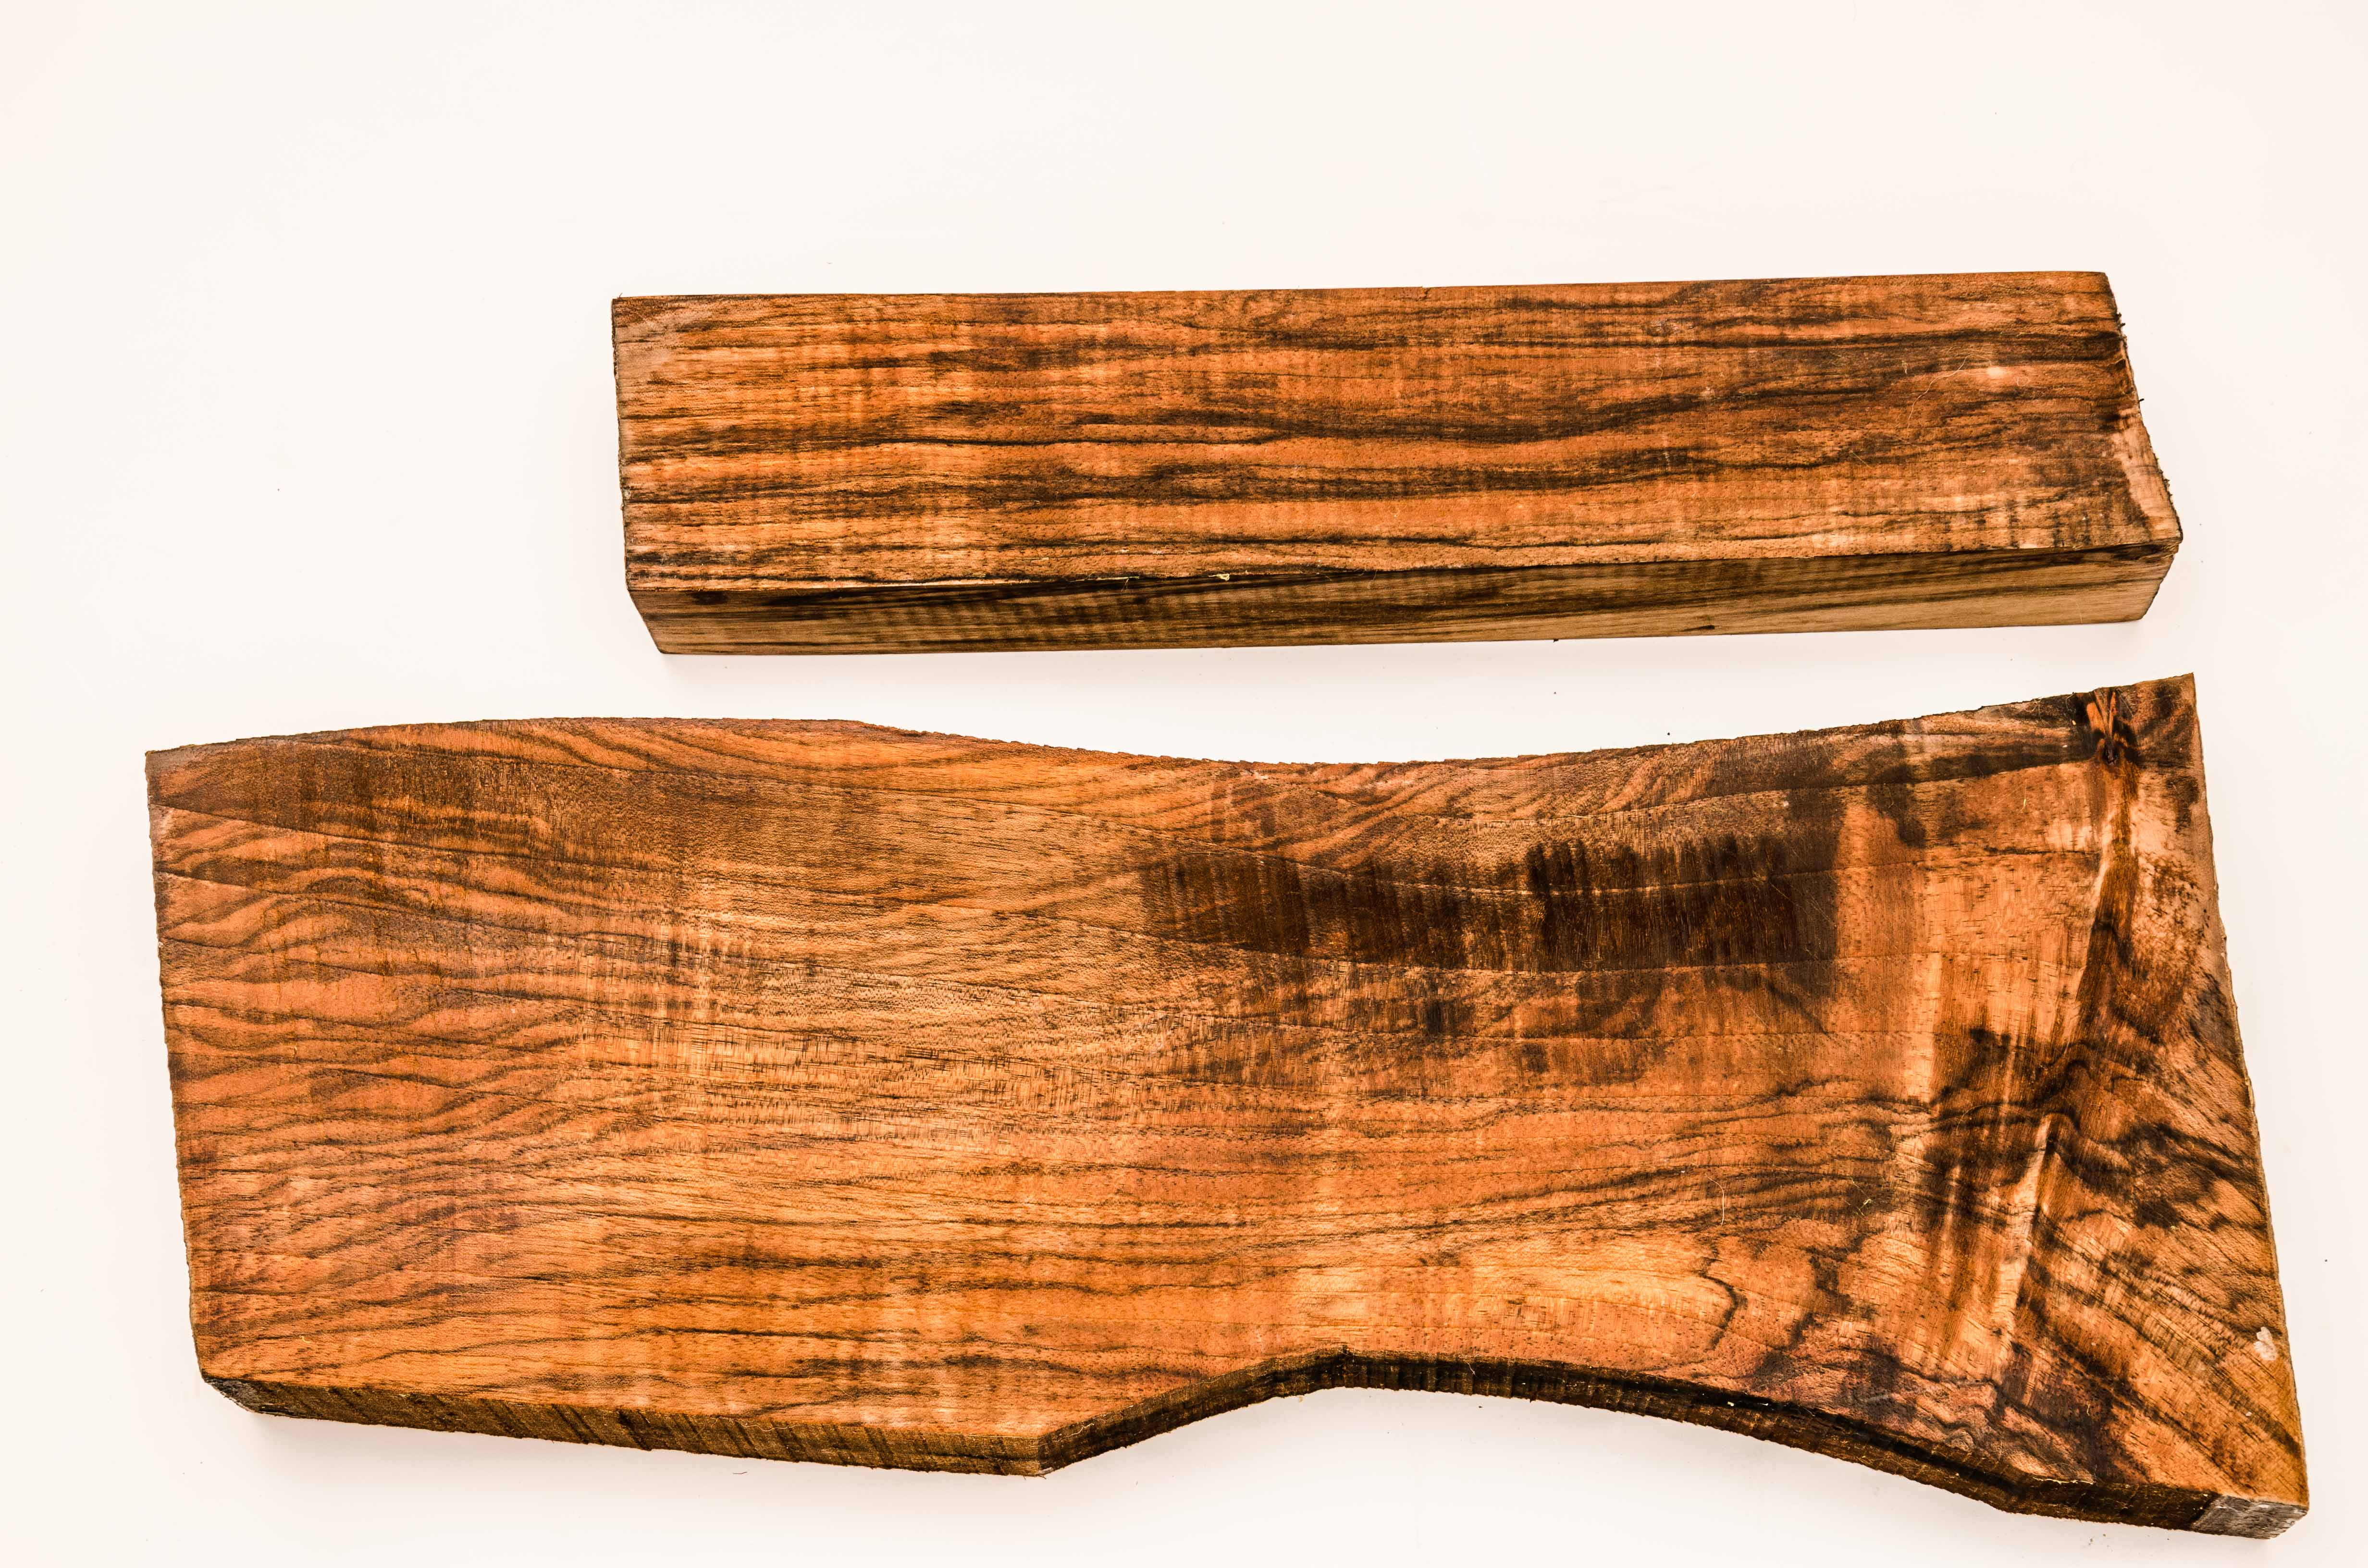 walnut_stock_blanks_for_guns_and_rifles-0259